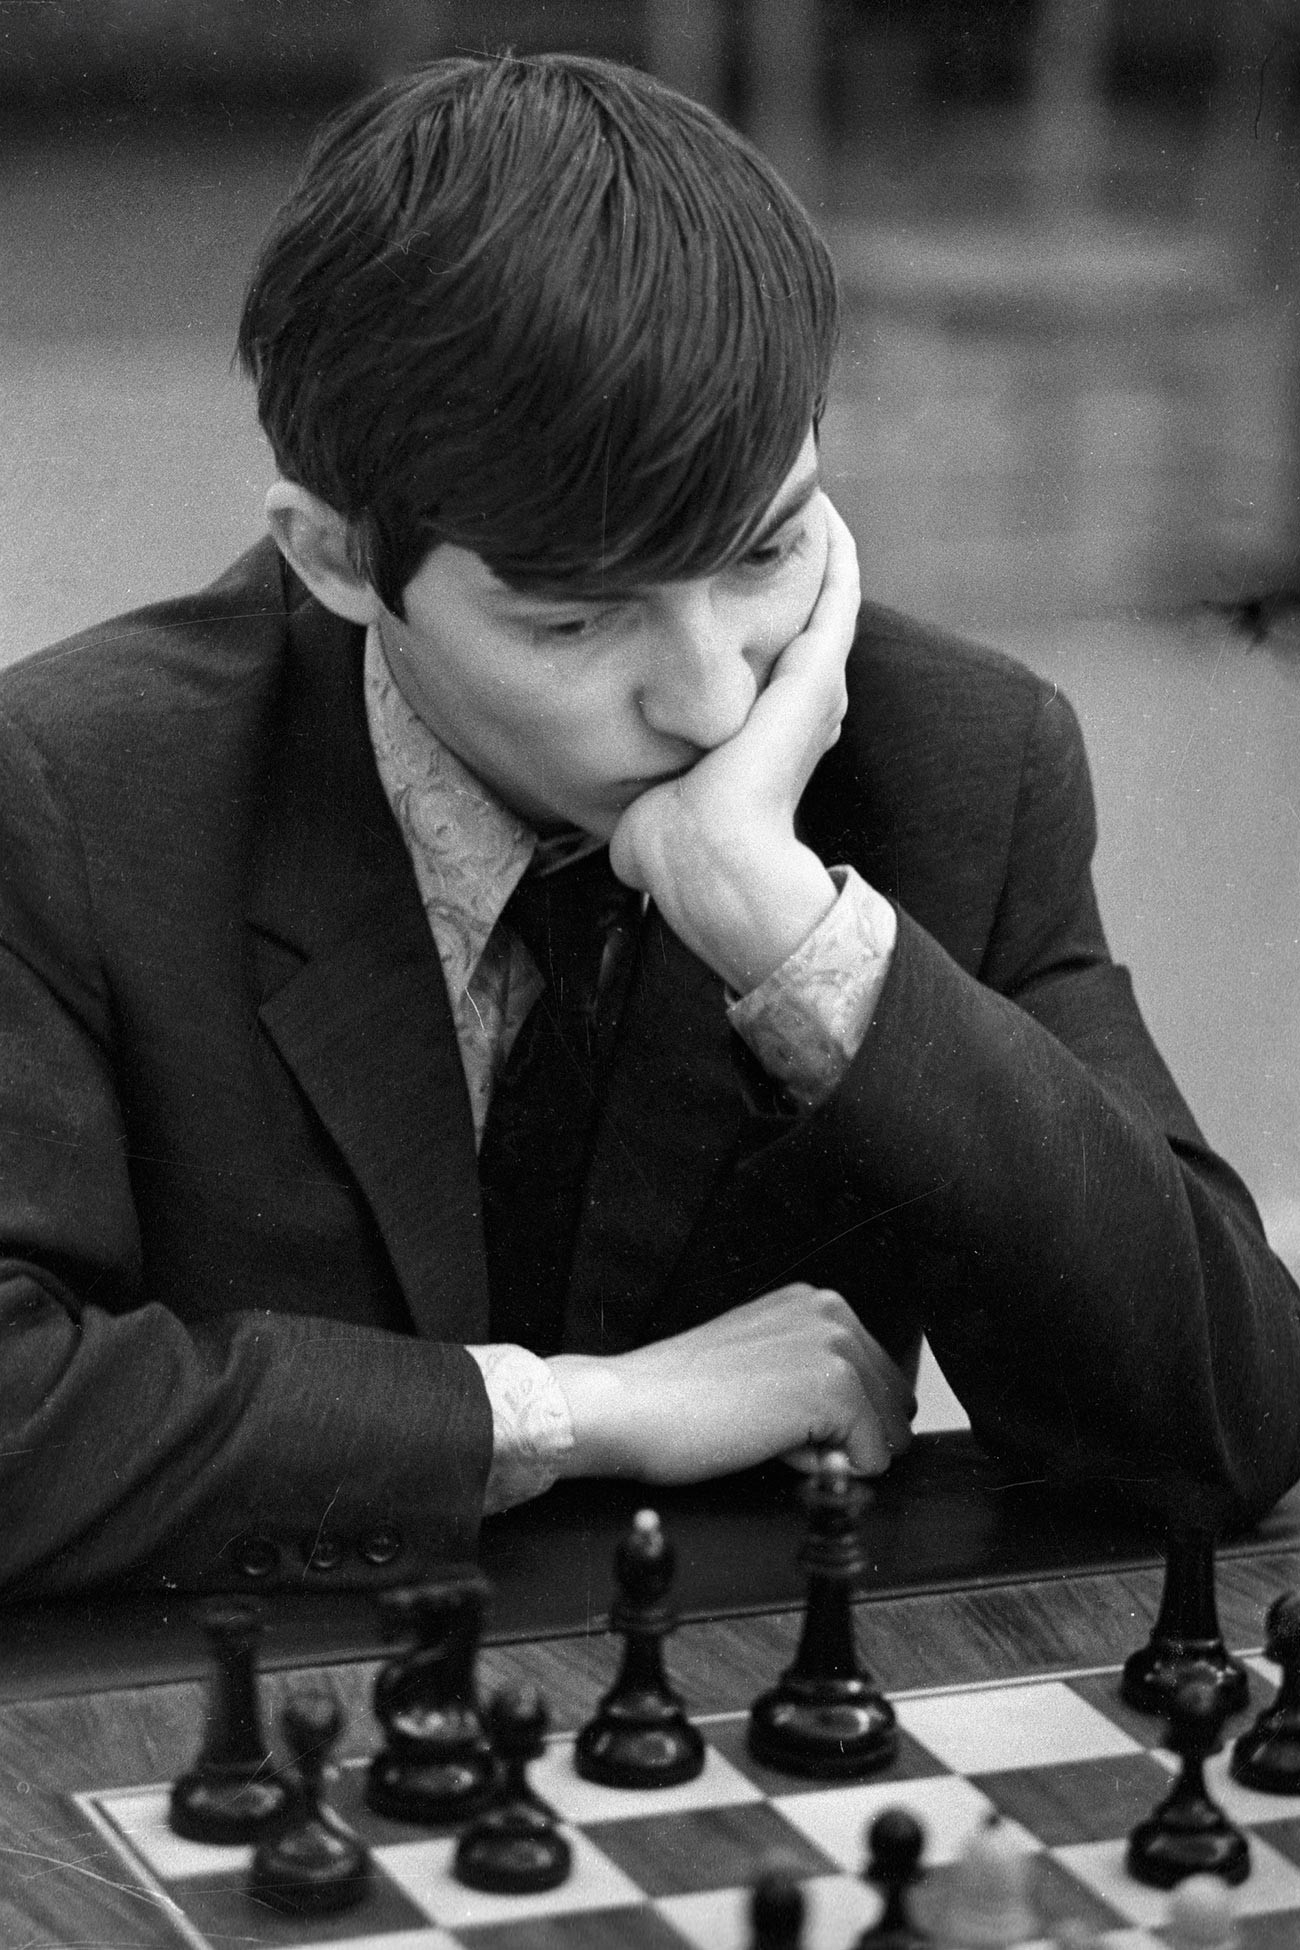 Karpov won the World Junior Championship in 1969.